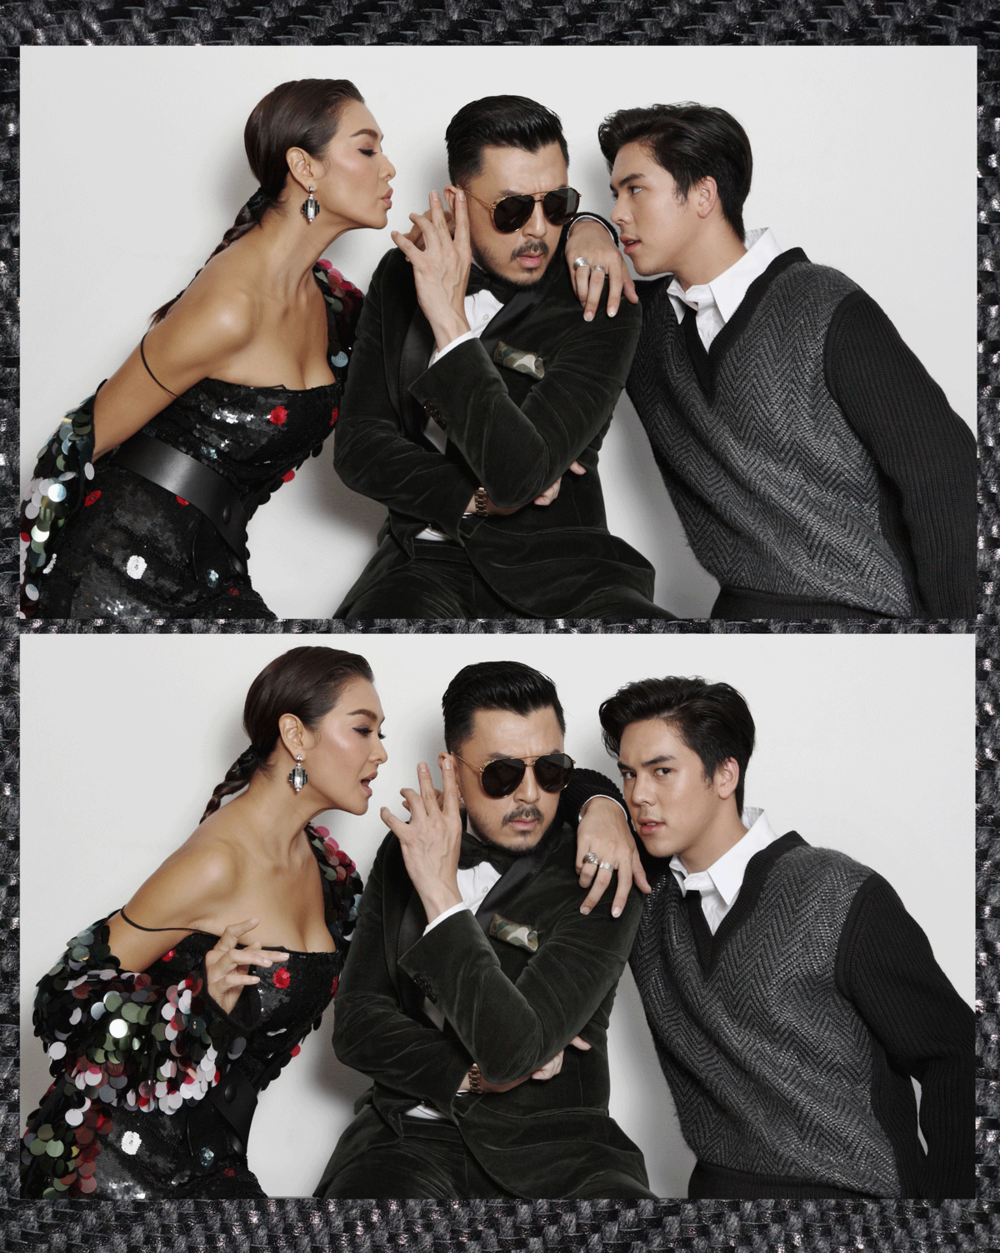 Mentor Lukkade Metinee in Emporio Armani / Mentor Moo in his own clothes  Mentor Peach Pachara in Louis Vuitton